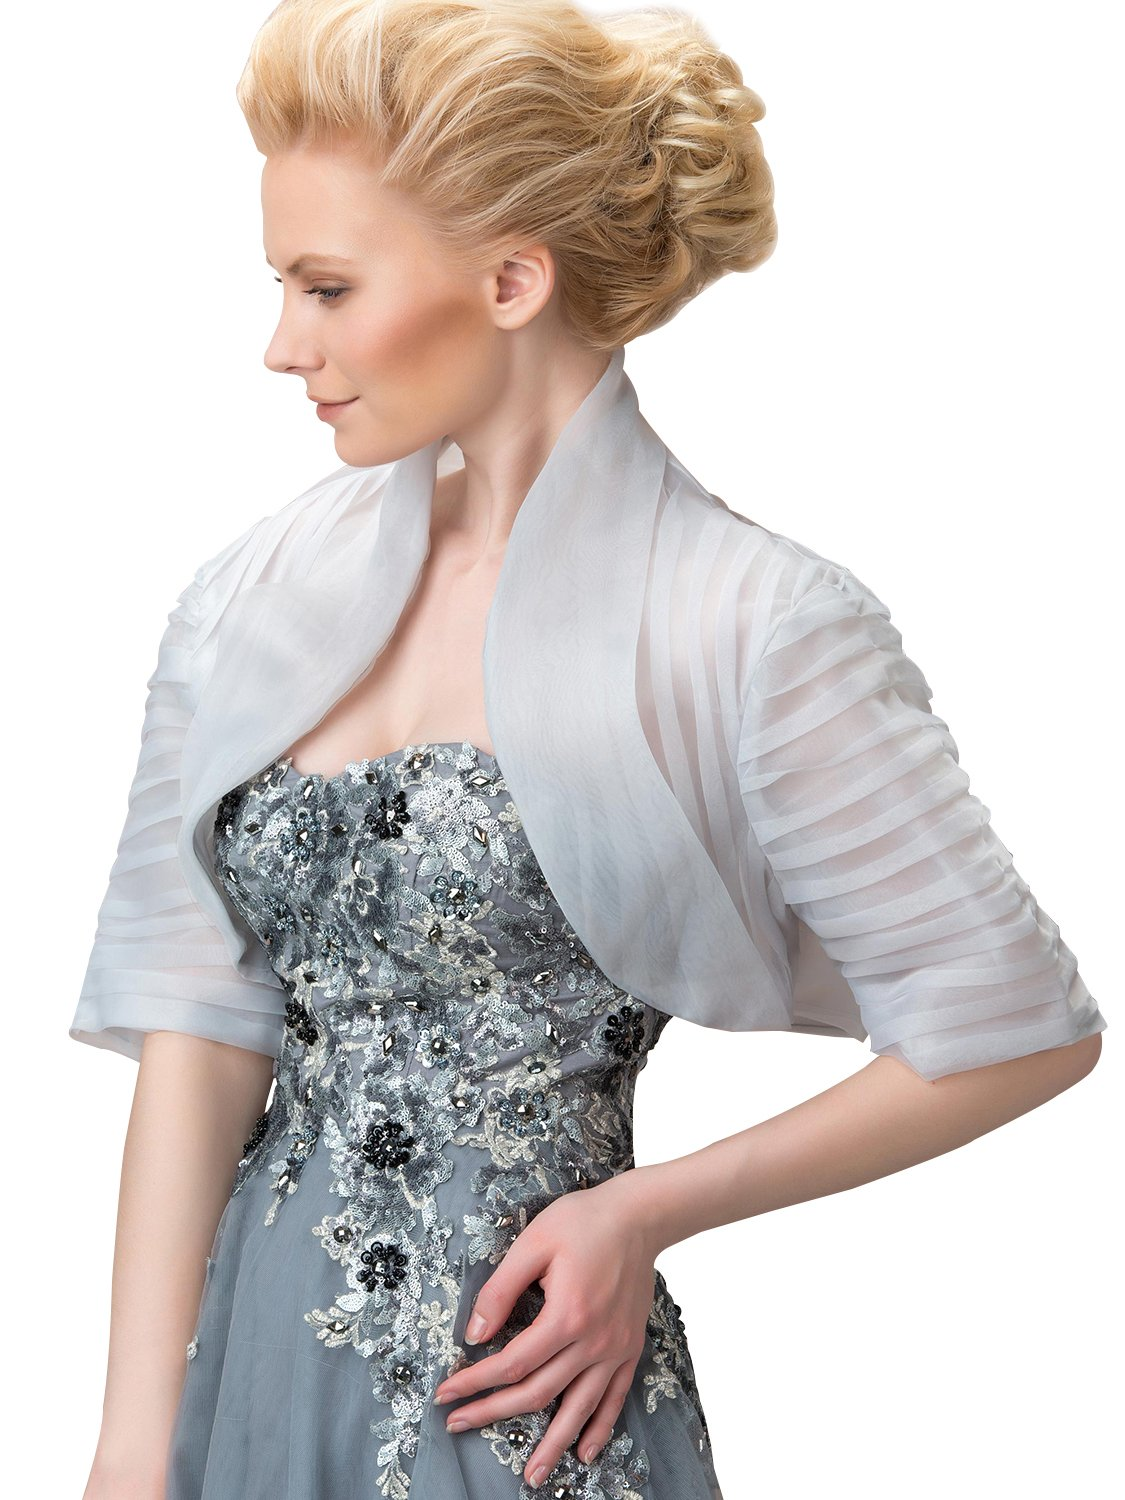 Tanpell Women's Generous Mandarin CollarHalf Sleeves Evening Bridal Wedding Jacket Silver US2